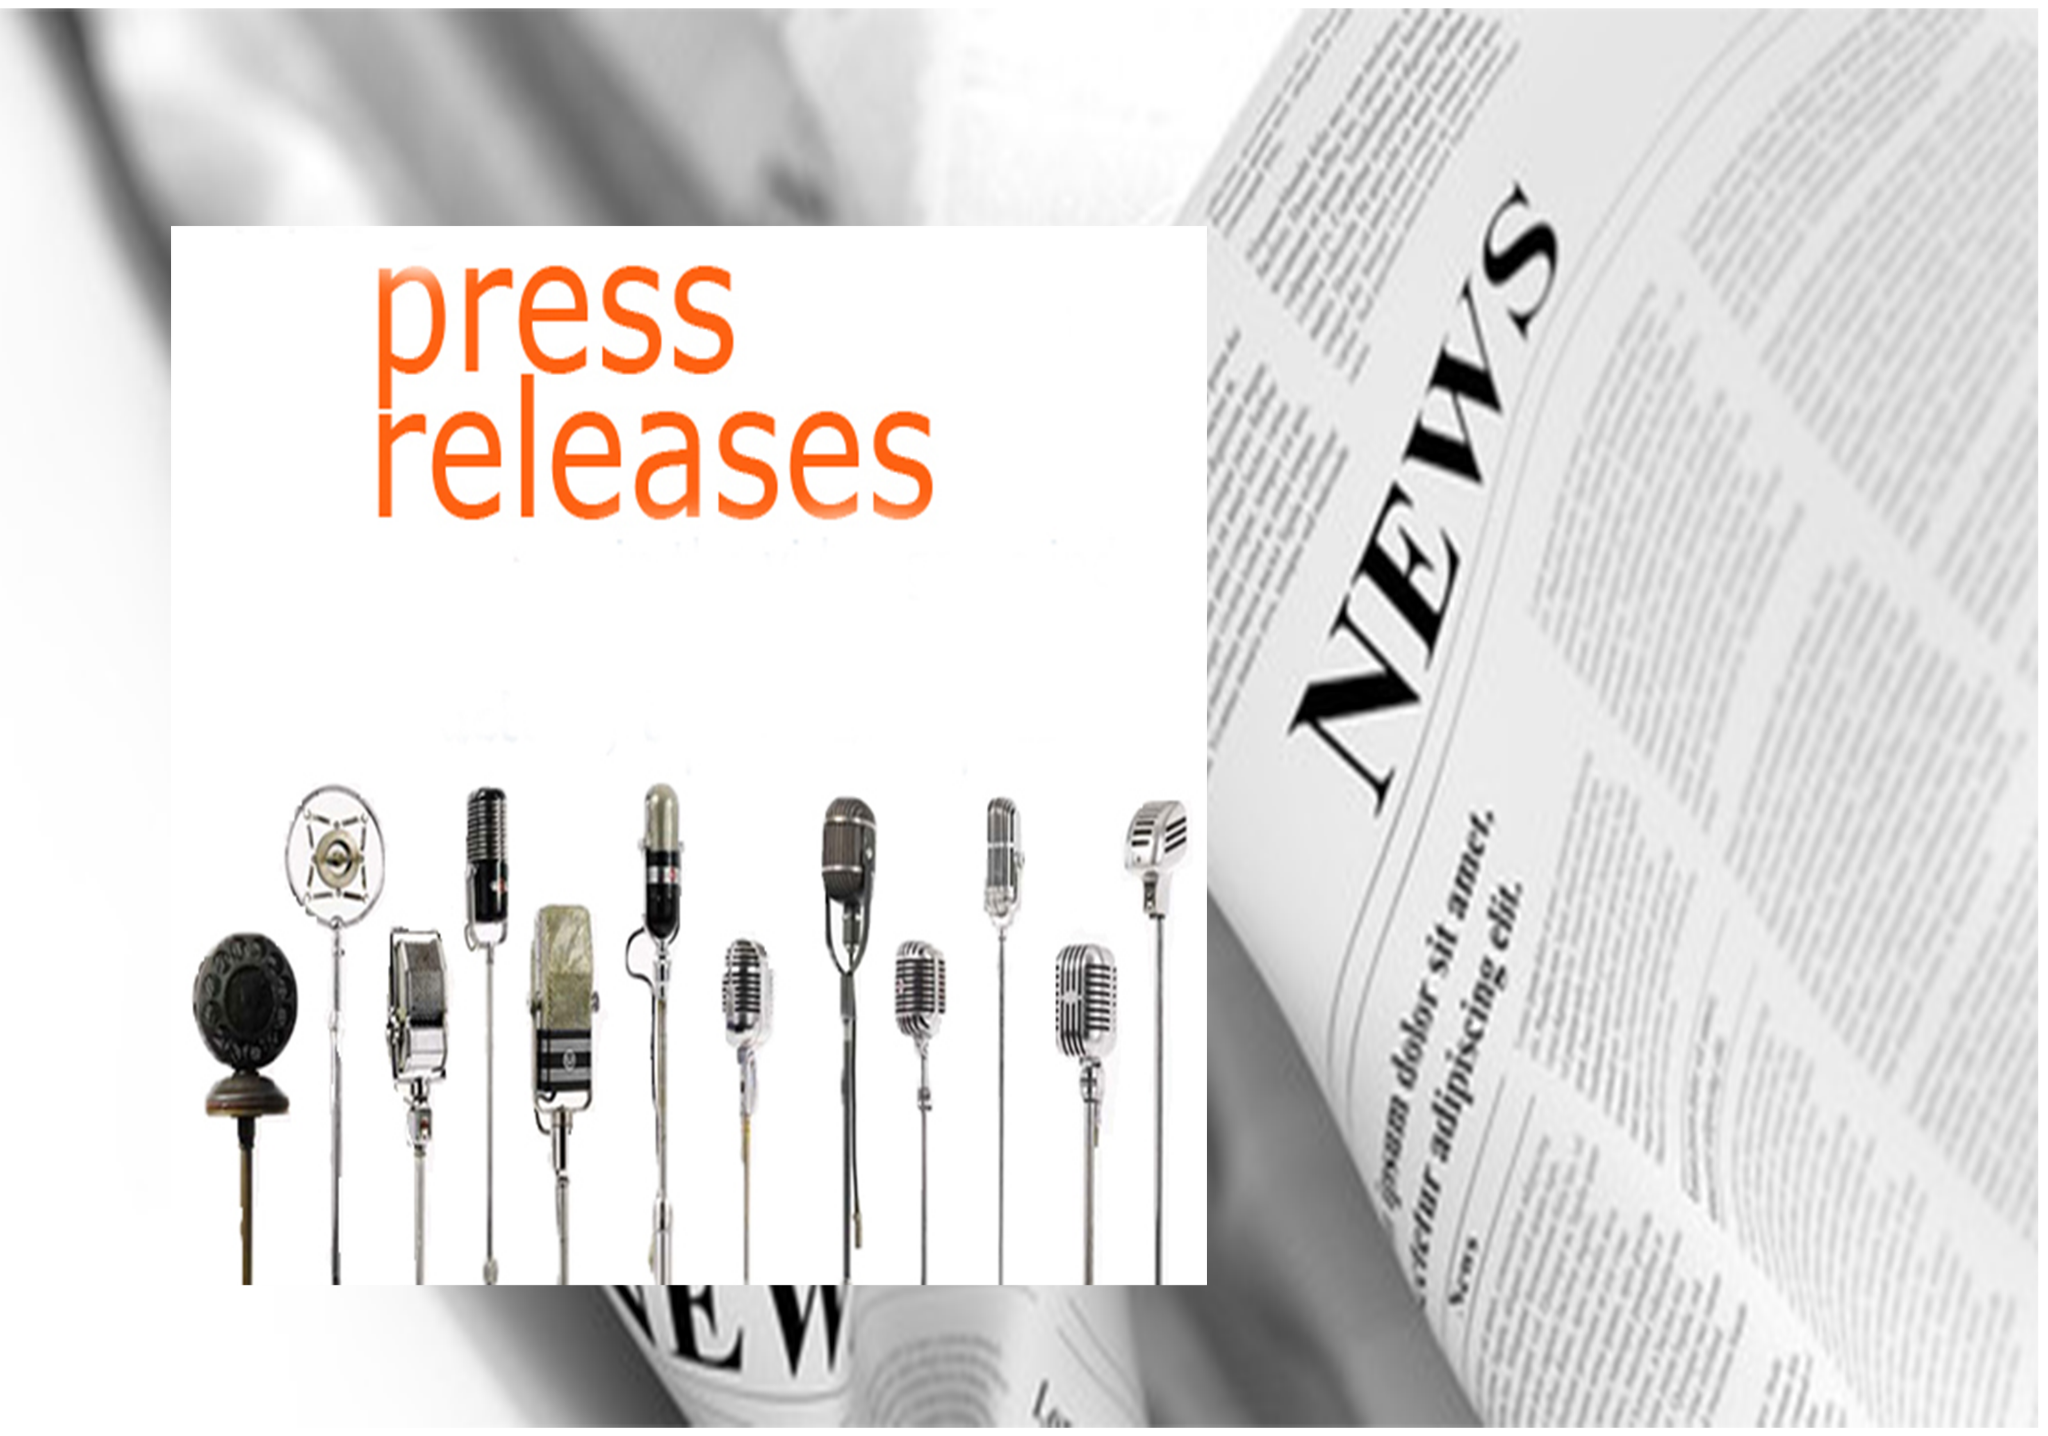 a47c5dbf02 Small Business press releases